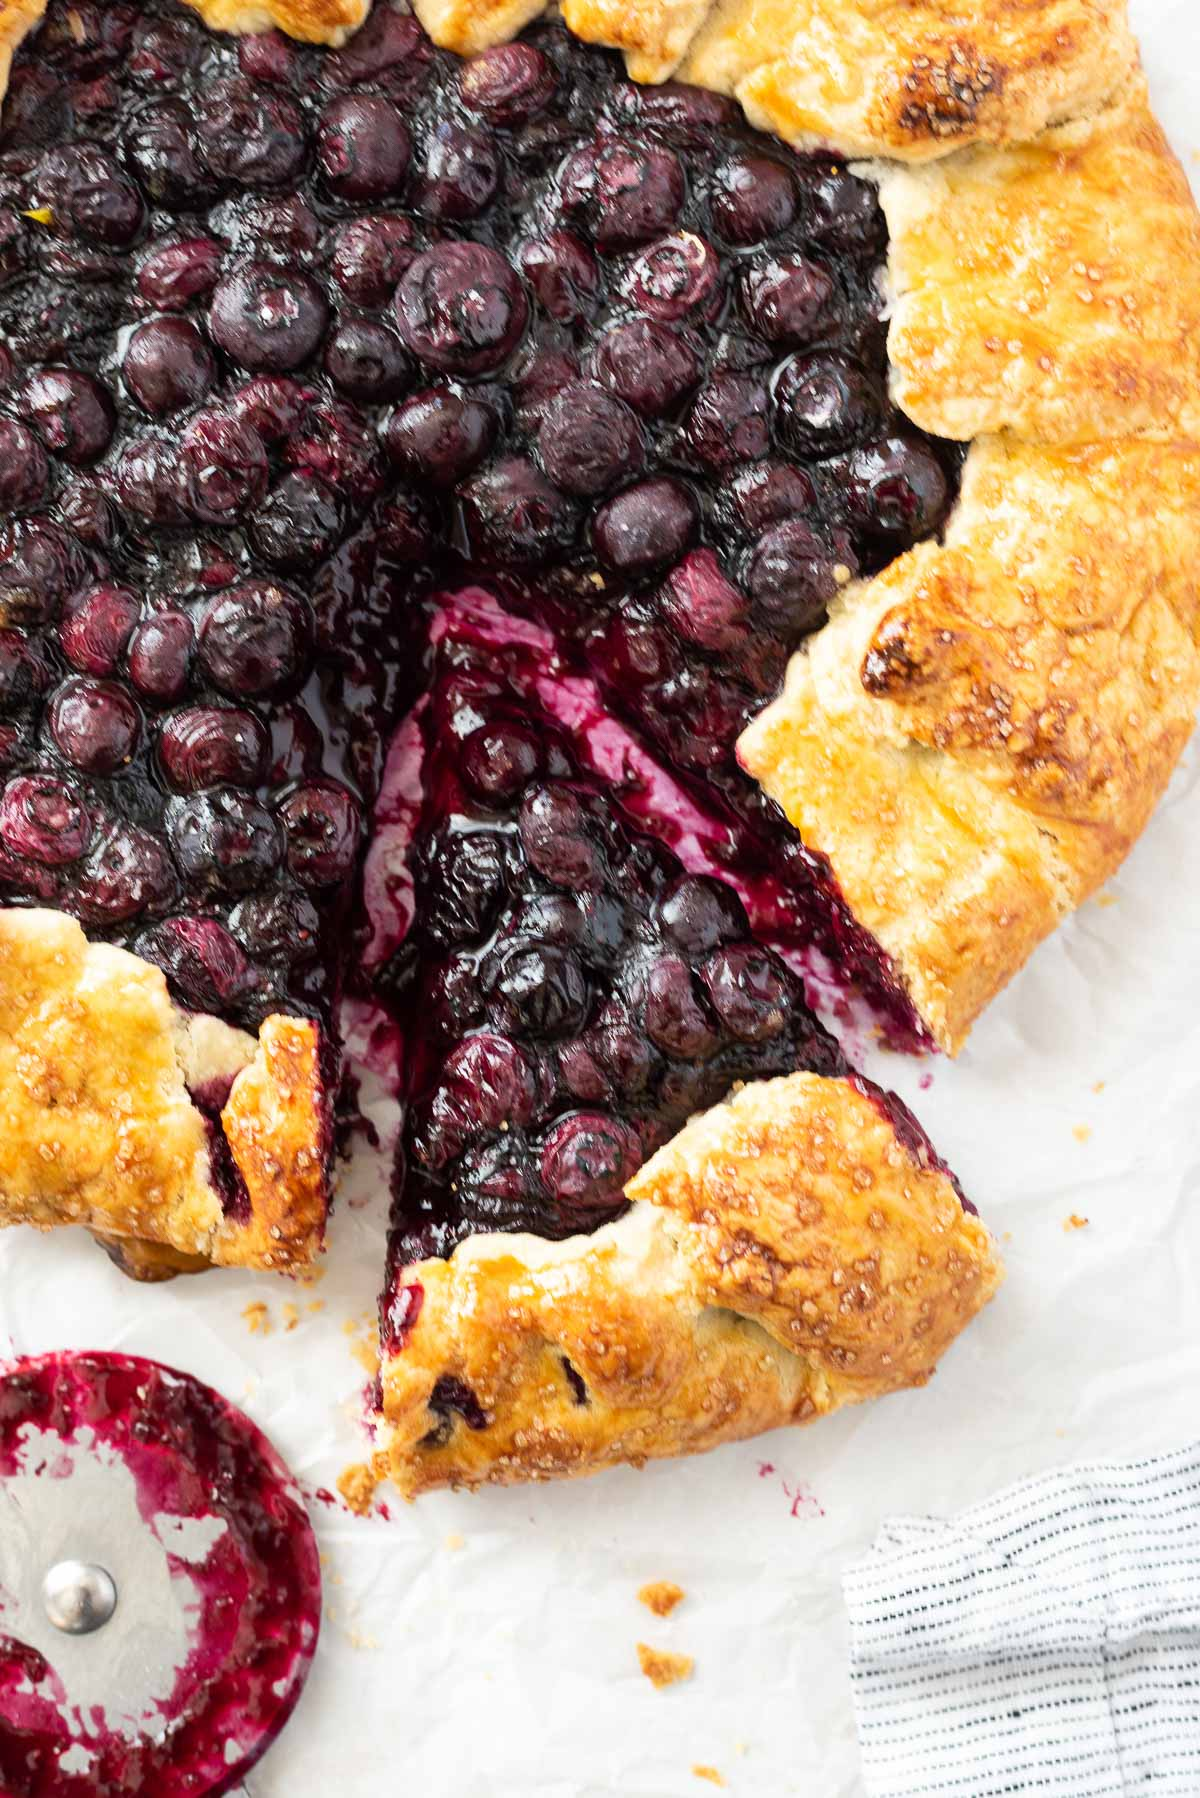 Blueberry galette with slice cut and pulled away